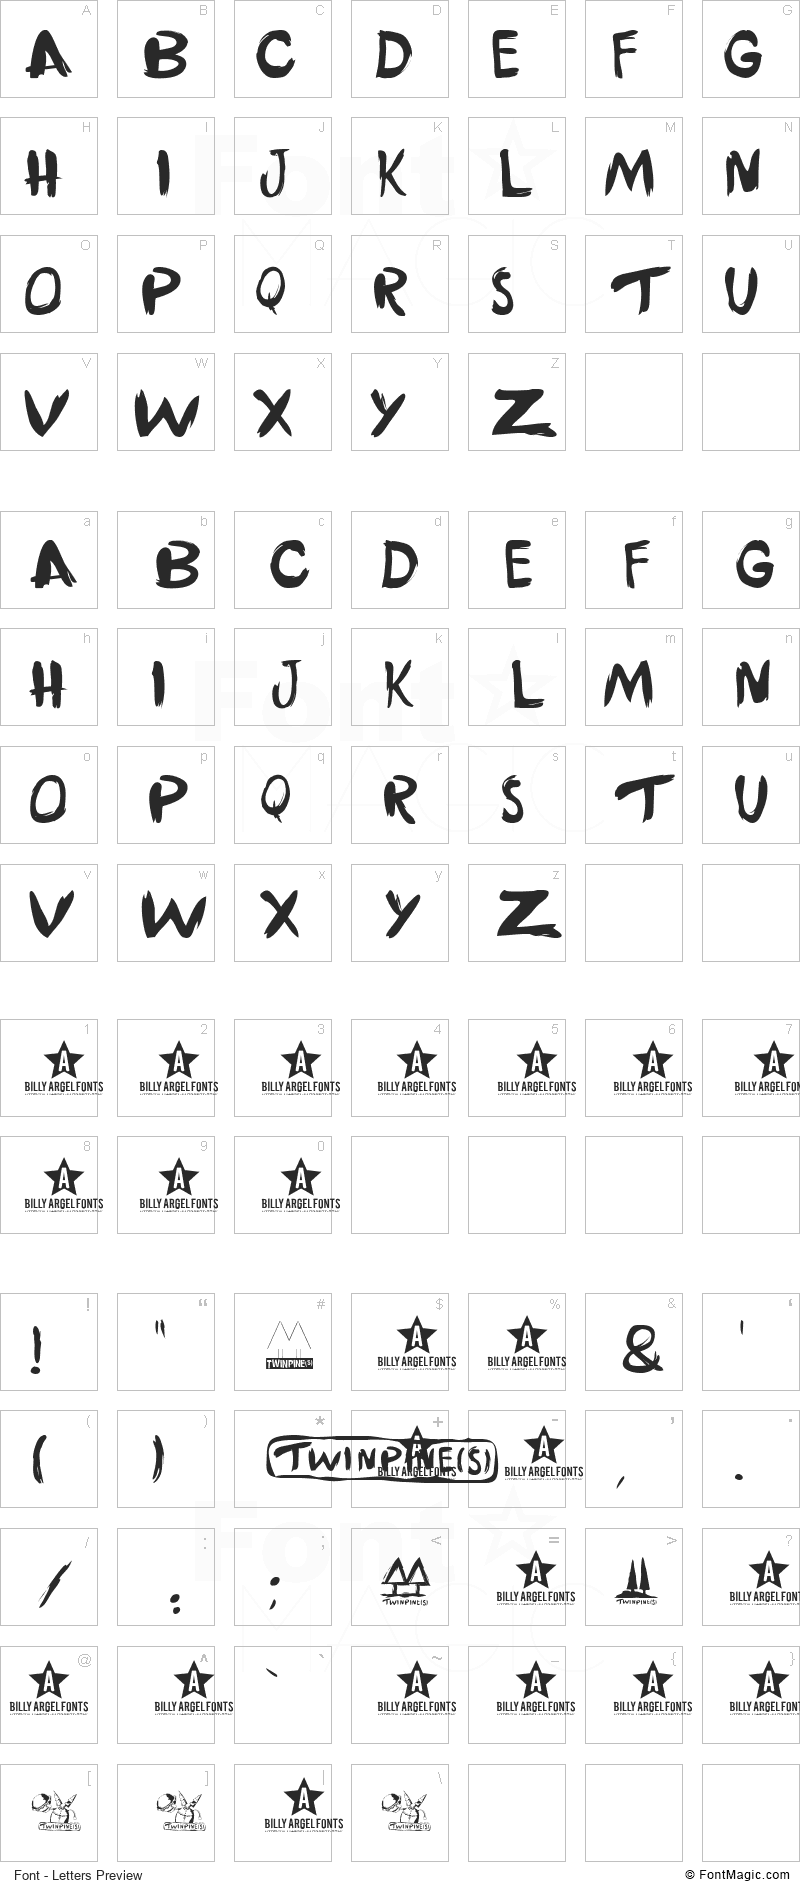 Twinpines Font - All Latters Preview Chart